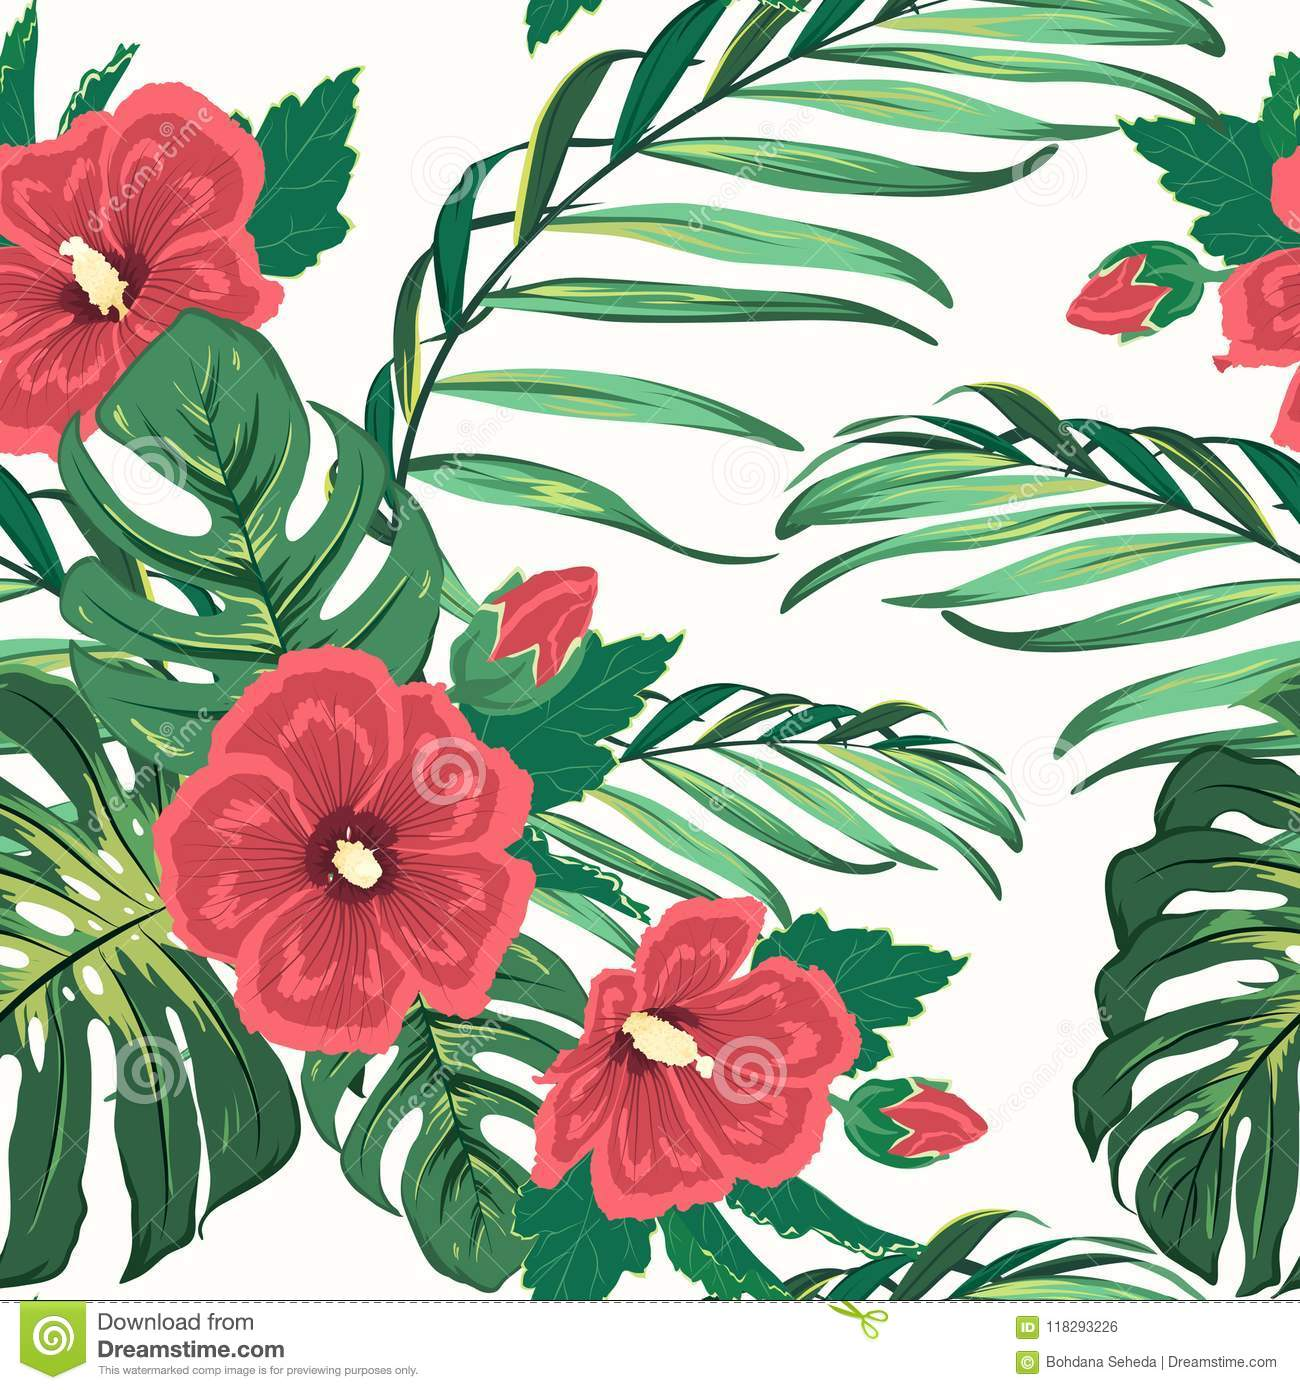 Exotic Tropical Floral Greenery Seamless Pattern Stock